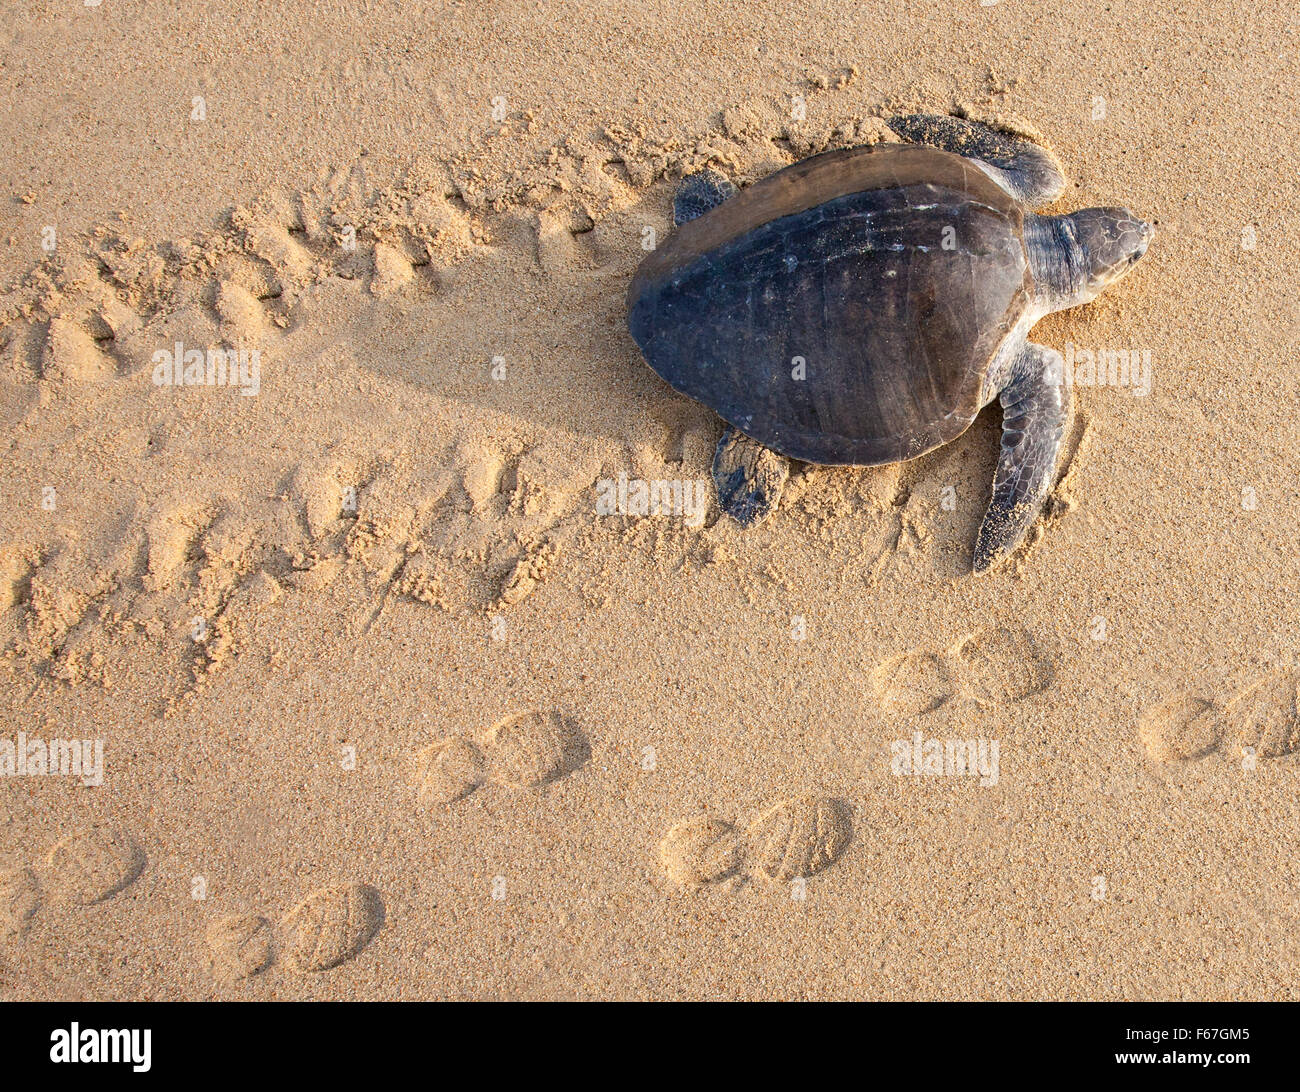 An Olive Ridley sea turtle crawls up to nest on the Ixtapilla, Michoacan, Mexico beach at sunrise. - Stock Image